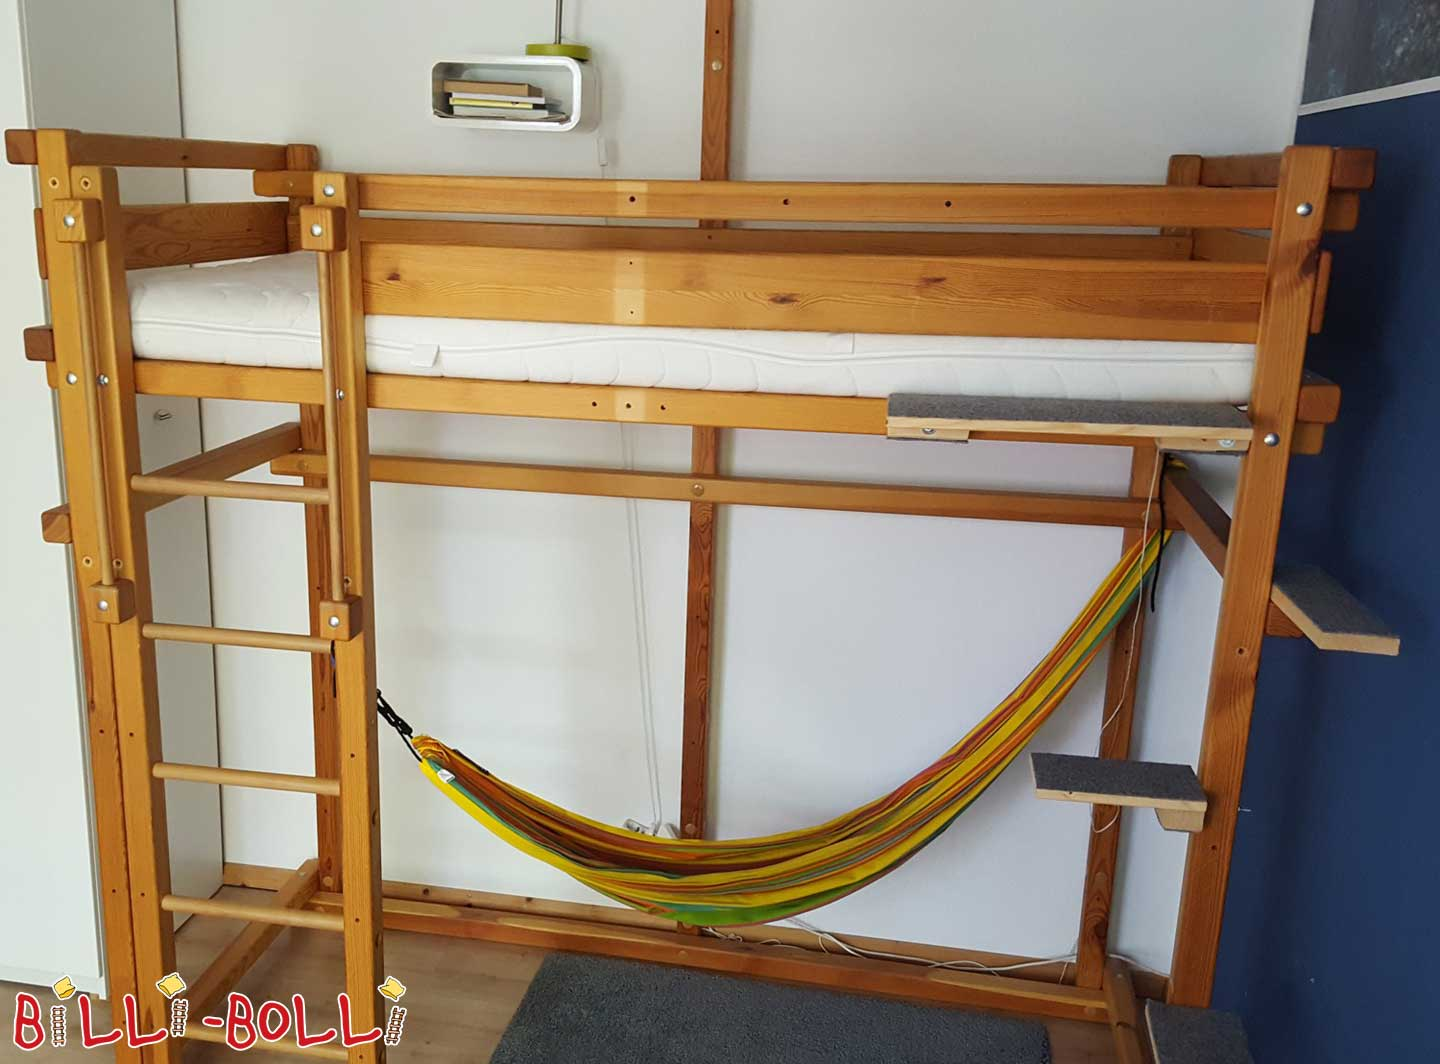 Co-growing high bed with climbing rope and rocking plate (second hand loft bed)